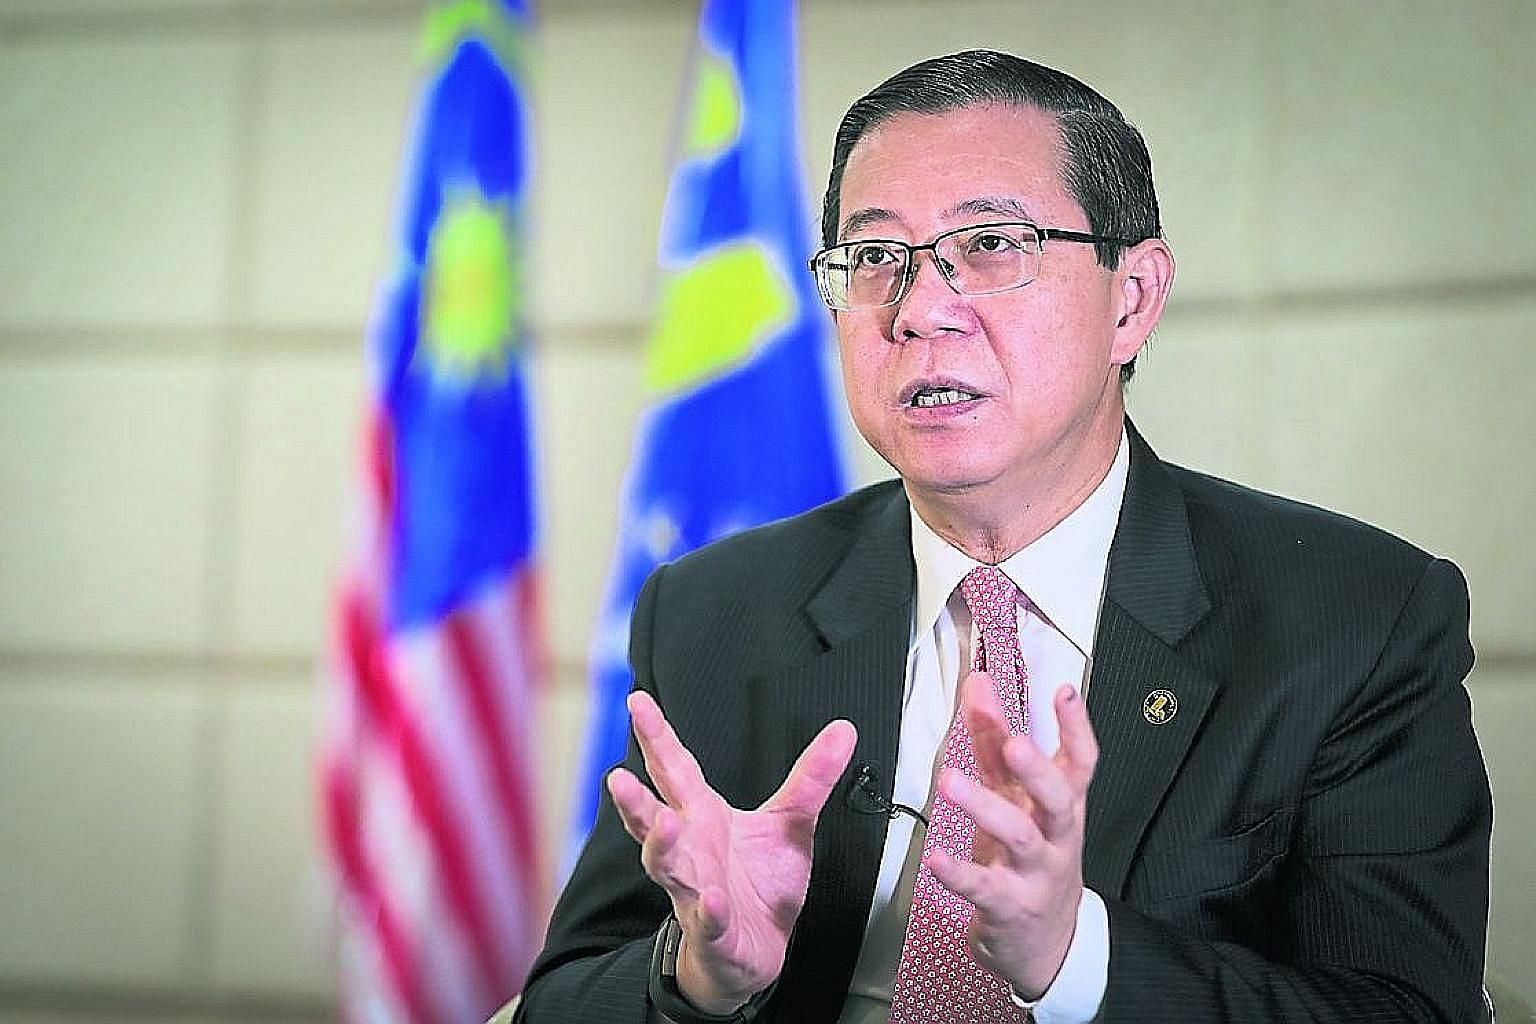 Mr Lim Guan Eng was chief minister of Penang between 2008 and 2018, and early studies for the undersea tunnel started during his administration in 2016.